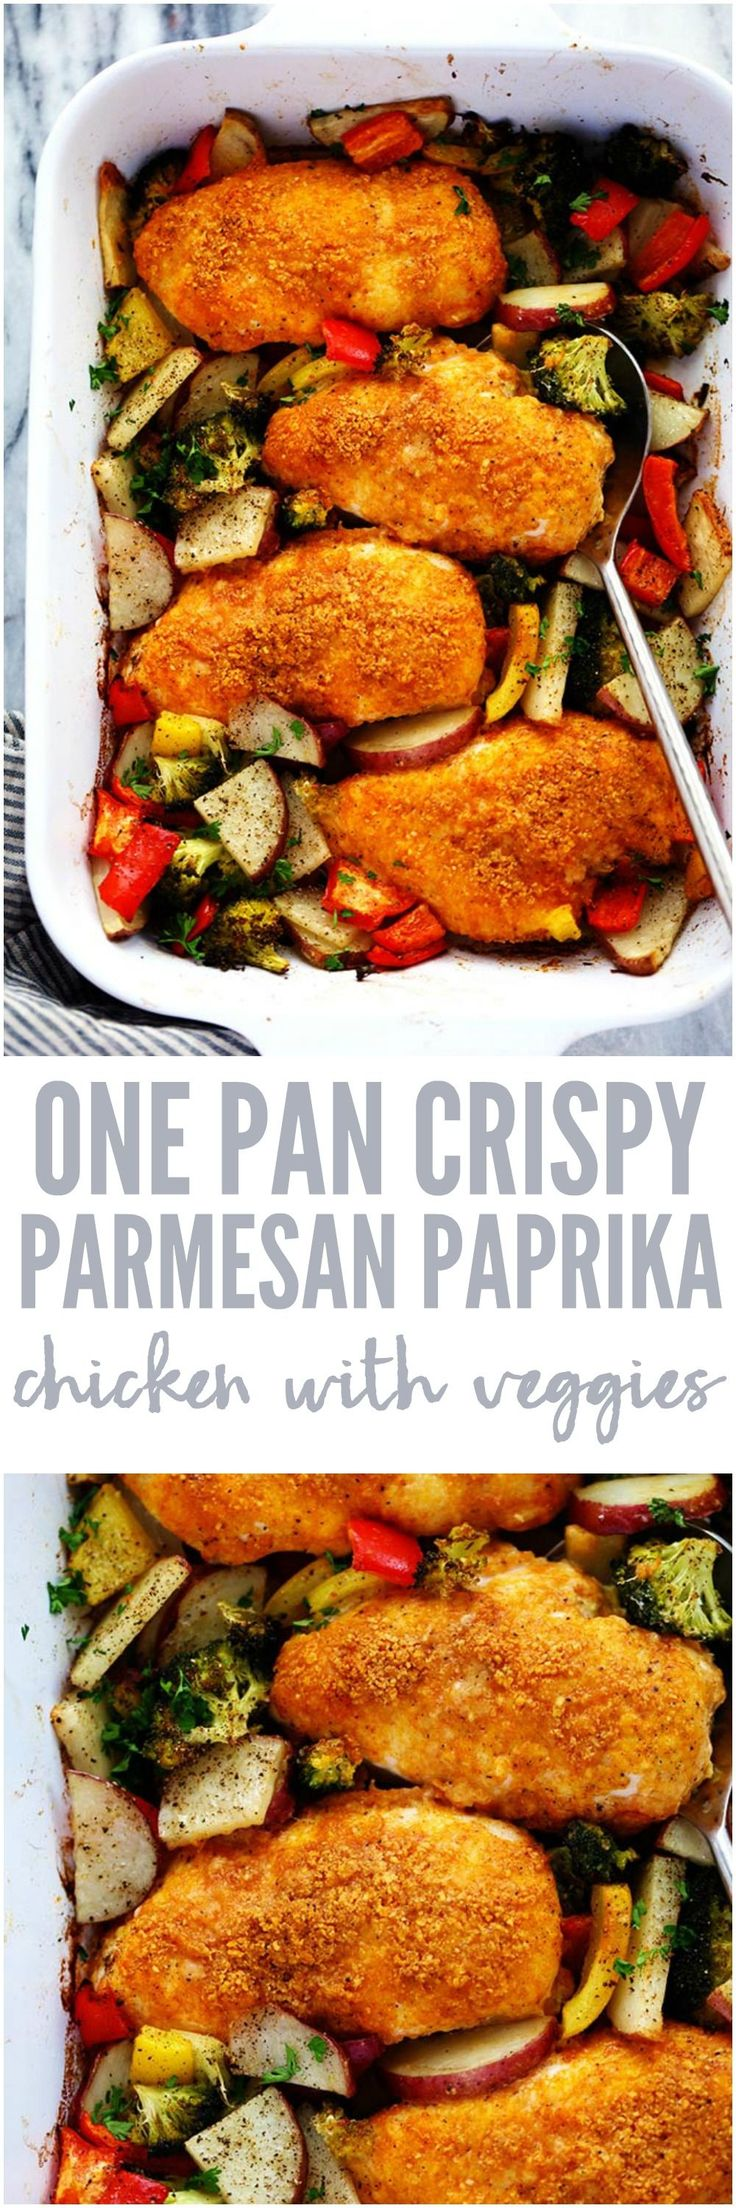 One Pan Crispy Parmesan Paprika Chicken with Vegetables has tender and juicy chicken with a crispy parmesan paprika breading surrounded by veggies. It it is full of flavor and makes an amazing one pan dinner your family will love!